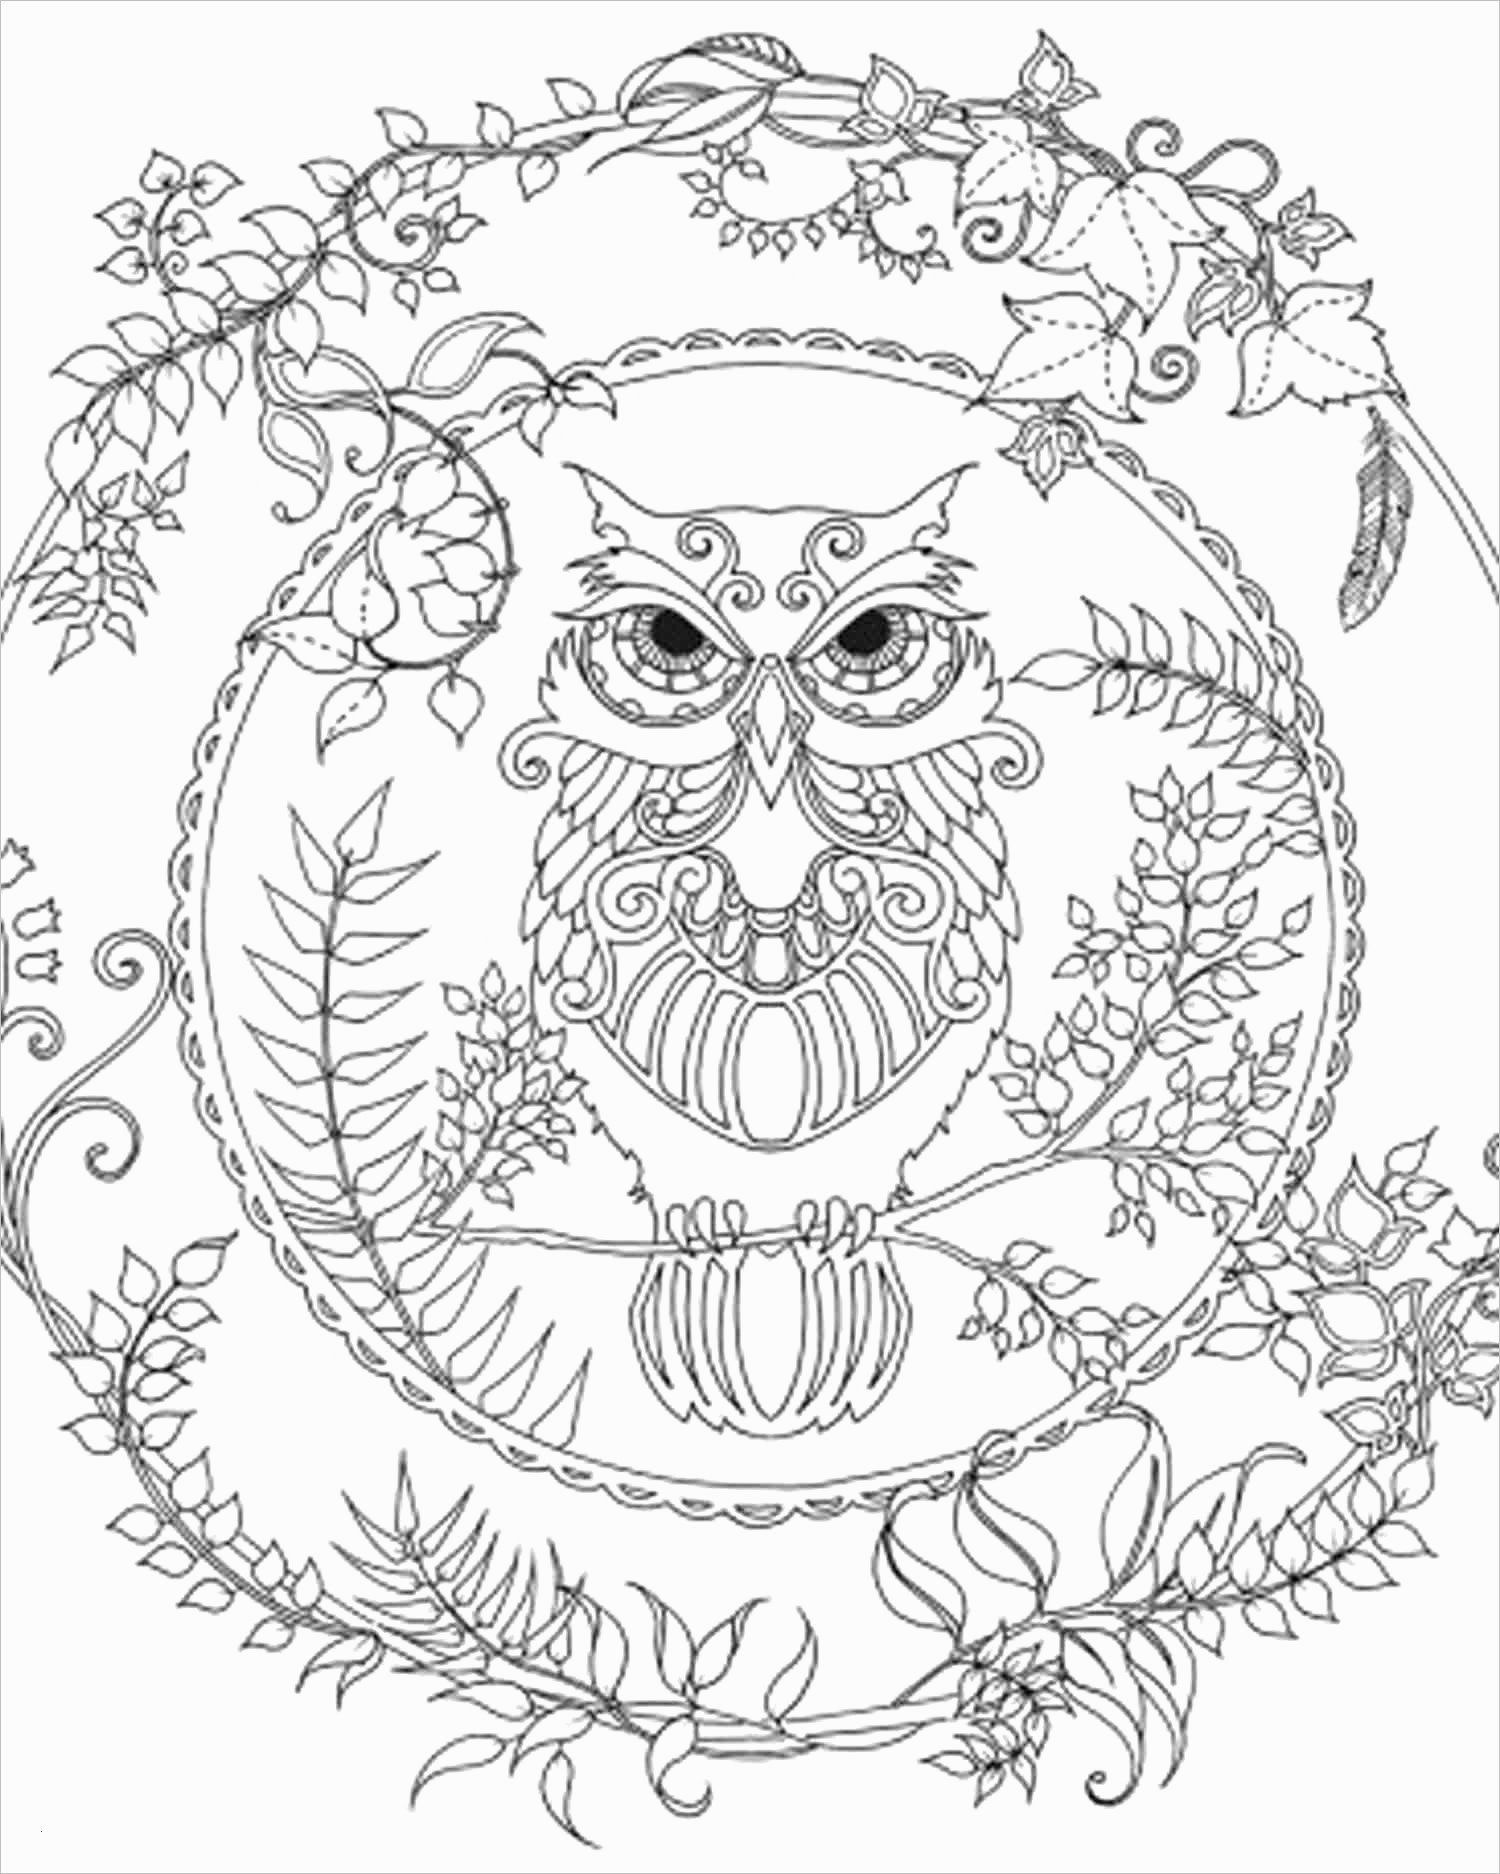 Printable Difficult Coloring Pages New 23 Plicated Animal Coloring Pages Collection Coloring Mandala Coloring Pages Love Coloring Pages Owl Coloring Pages